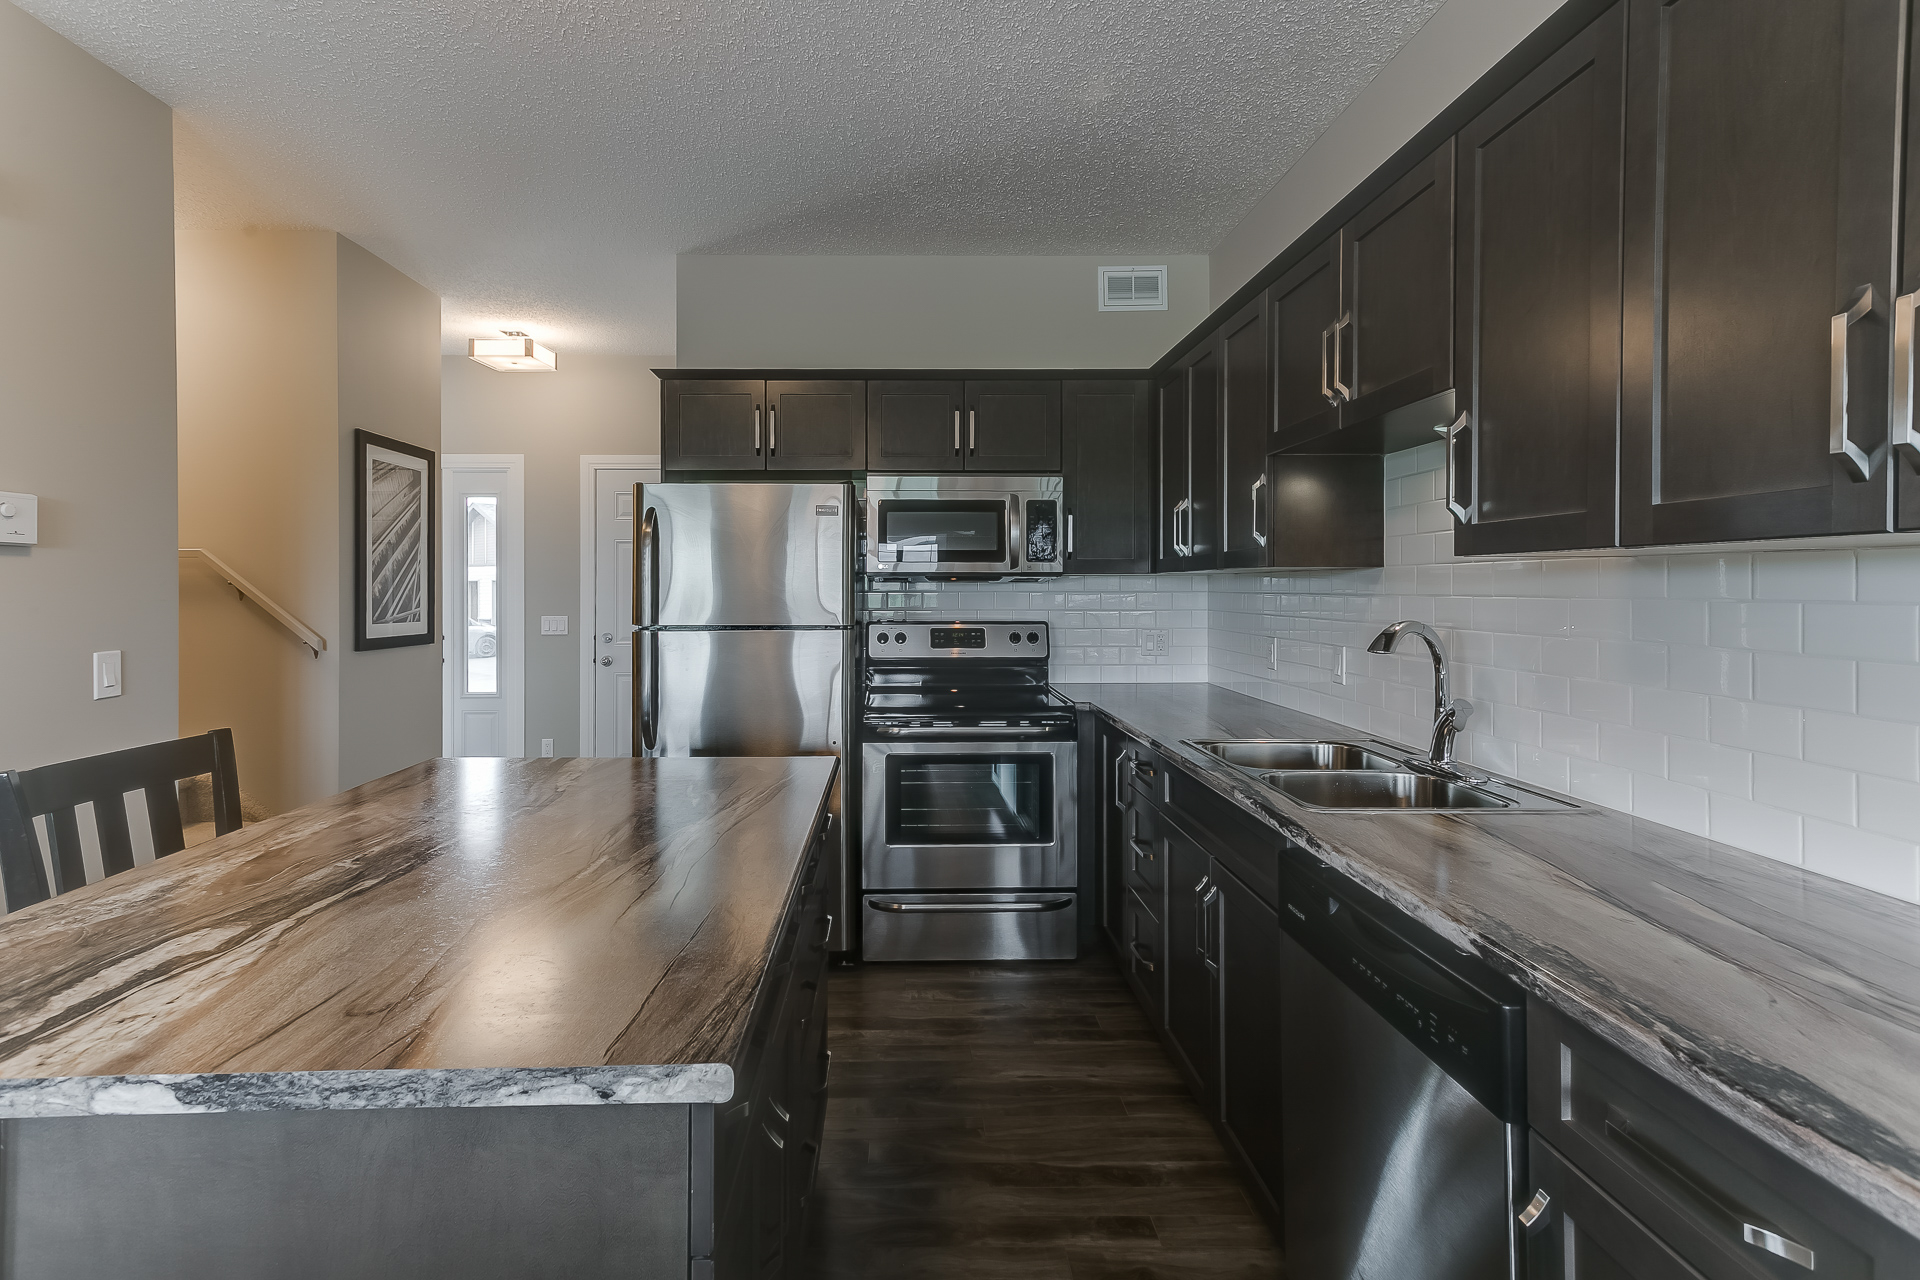 Kitchen Appliances and Features